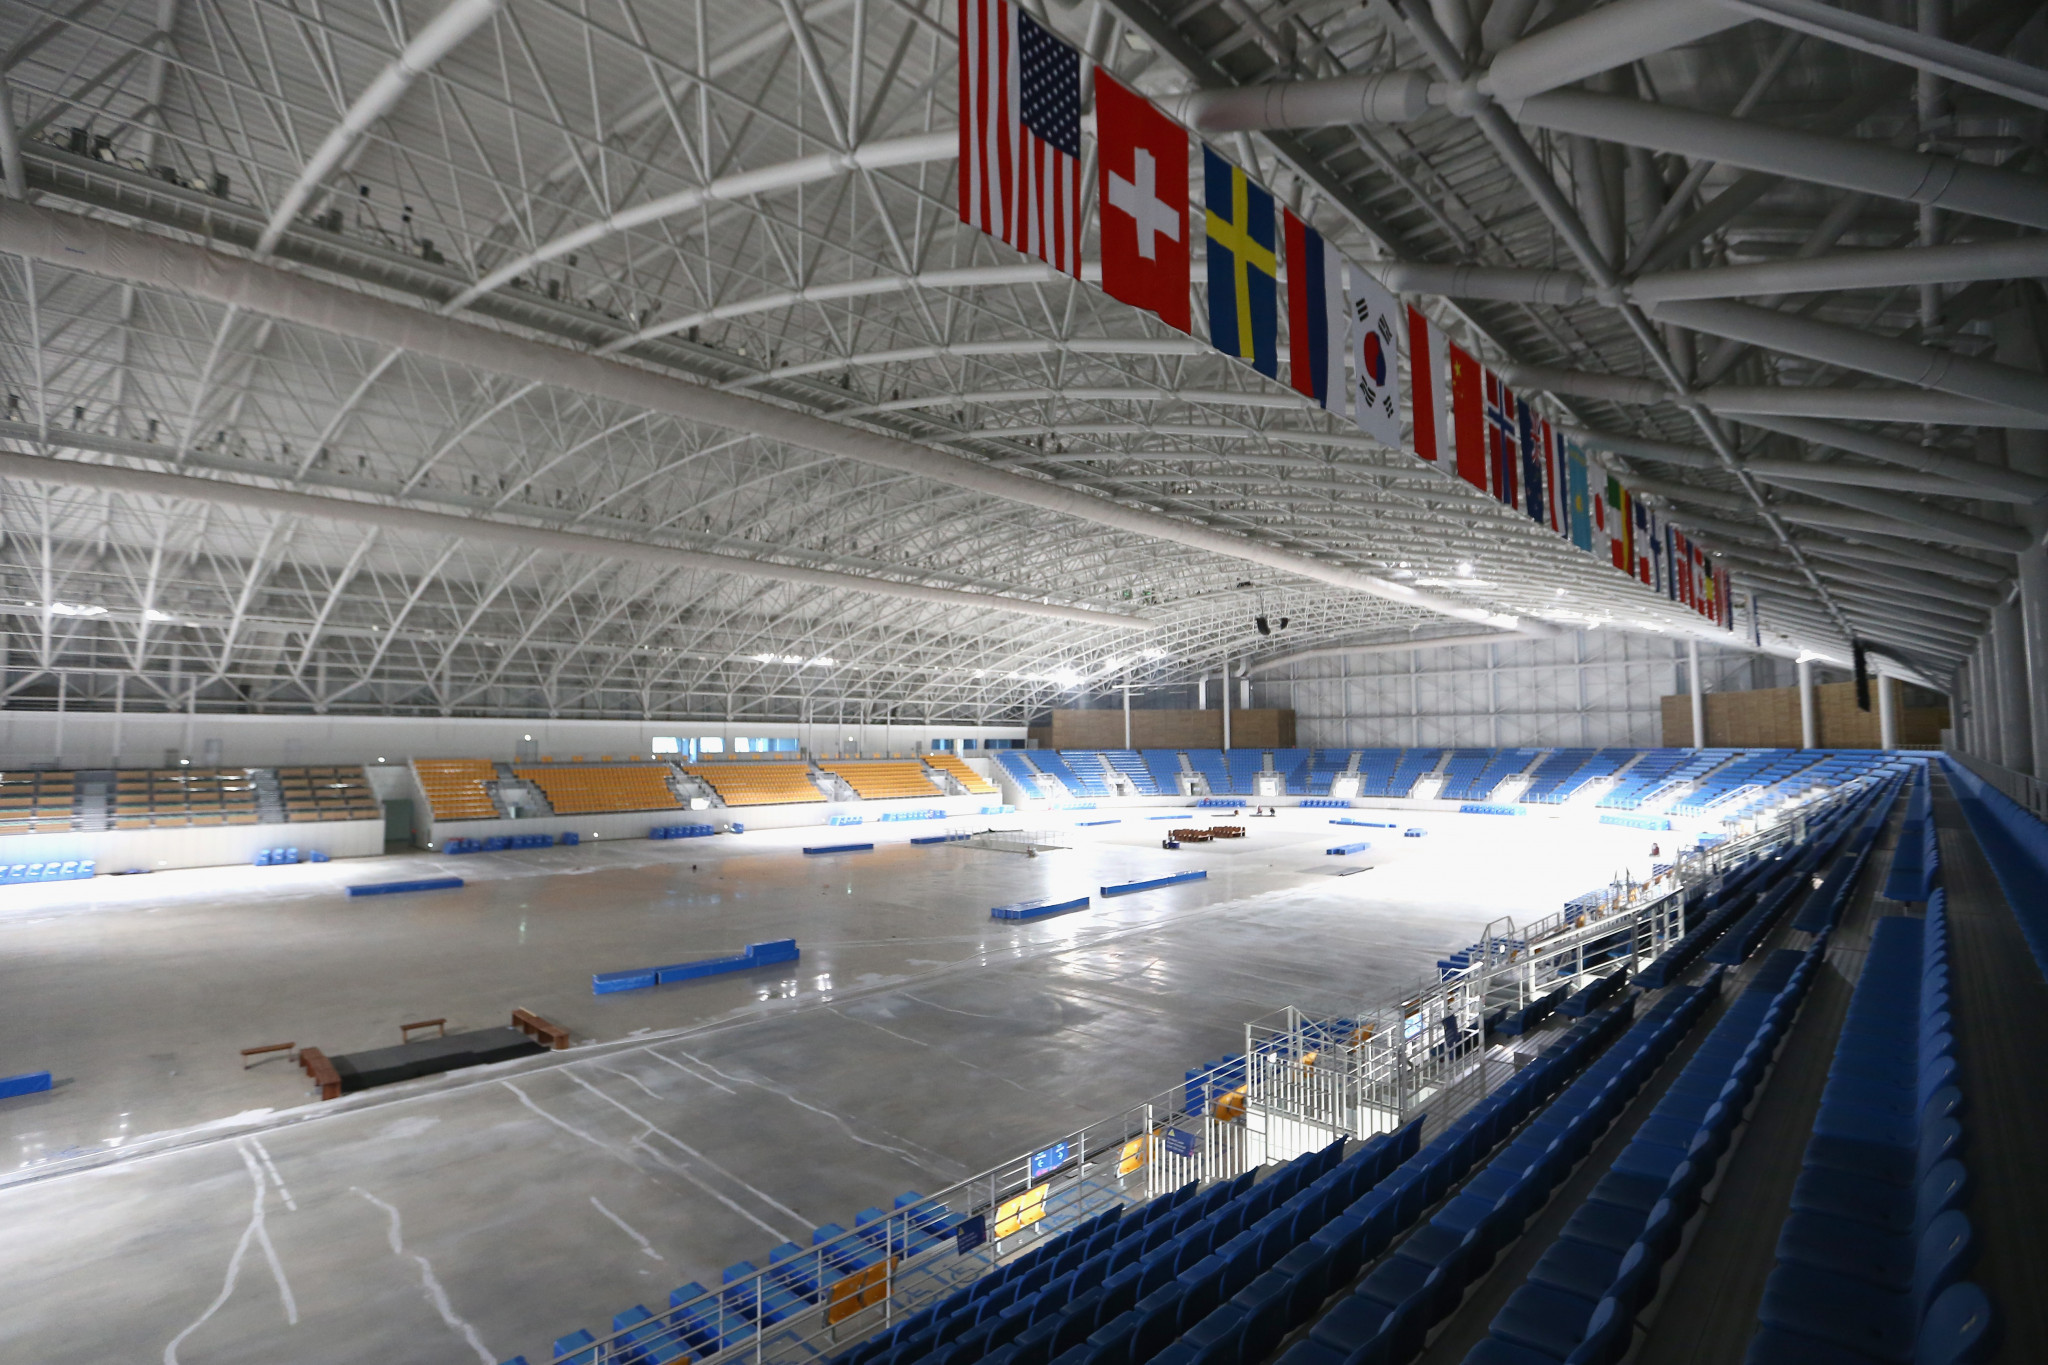 A record number of nations are set to participate in speed skating at Pyeongchang 2018 ©Getty Images